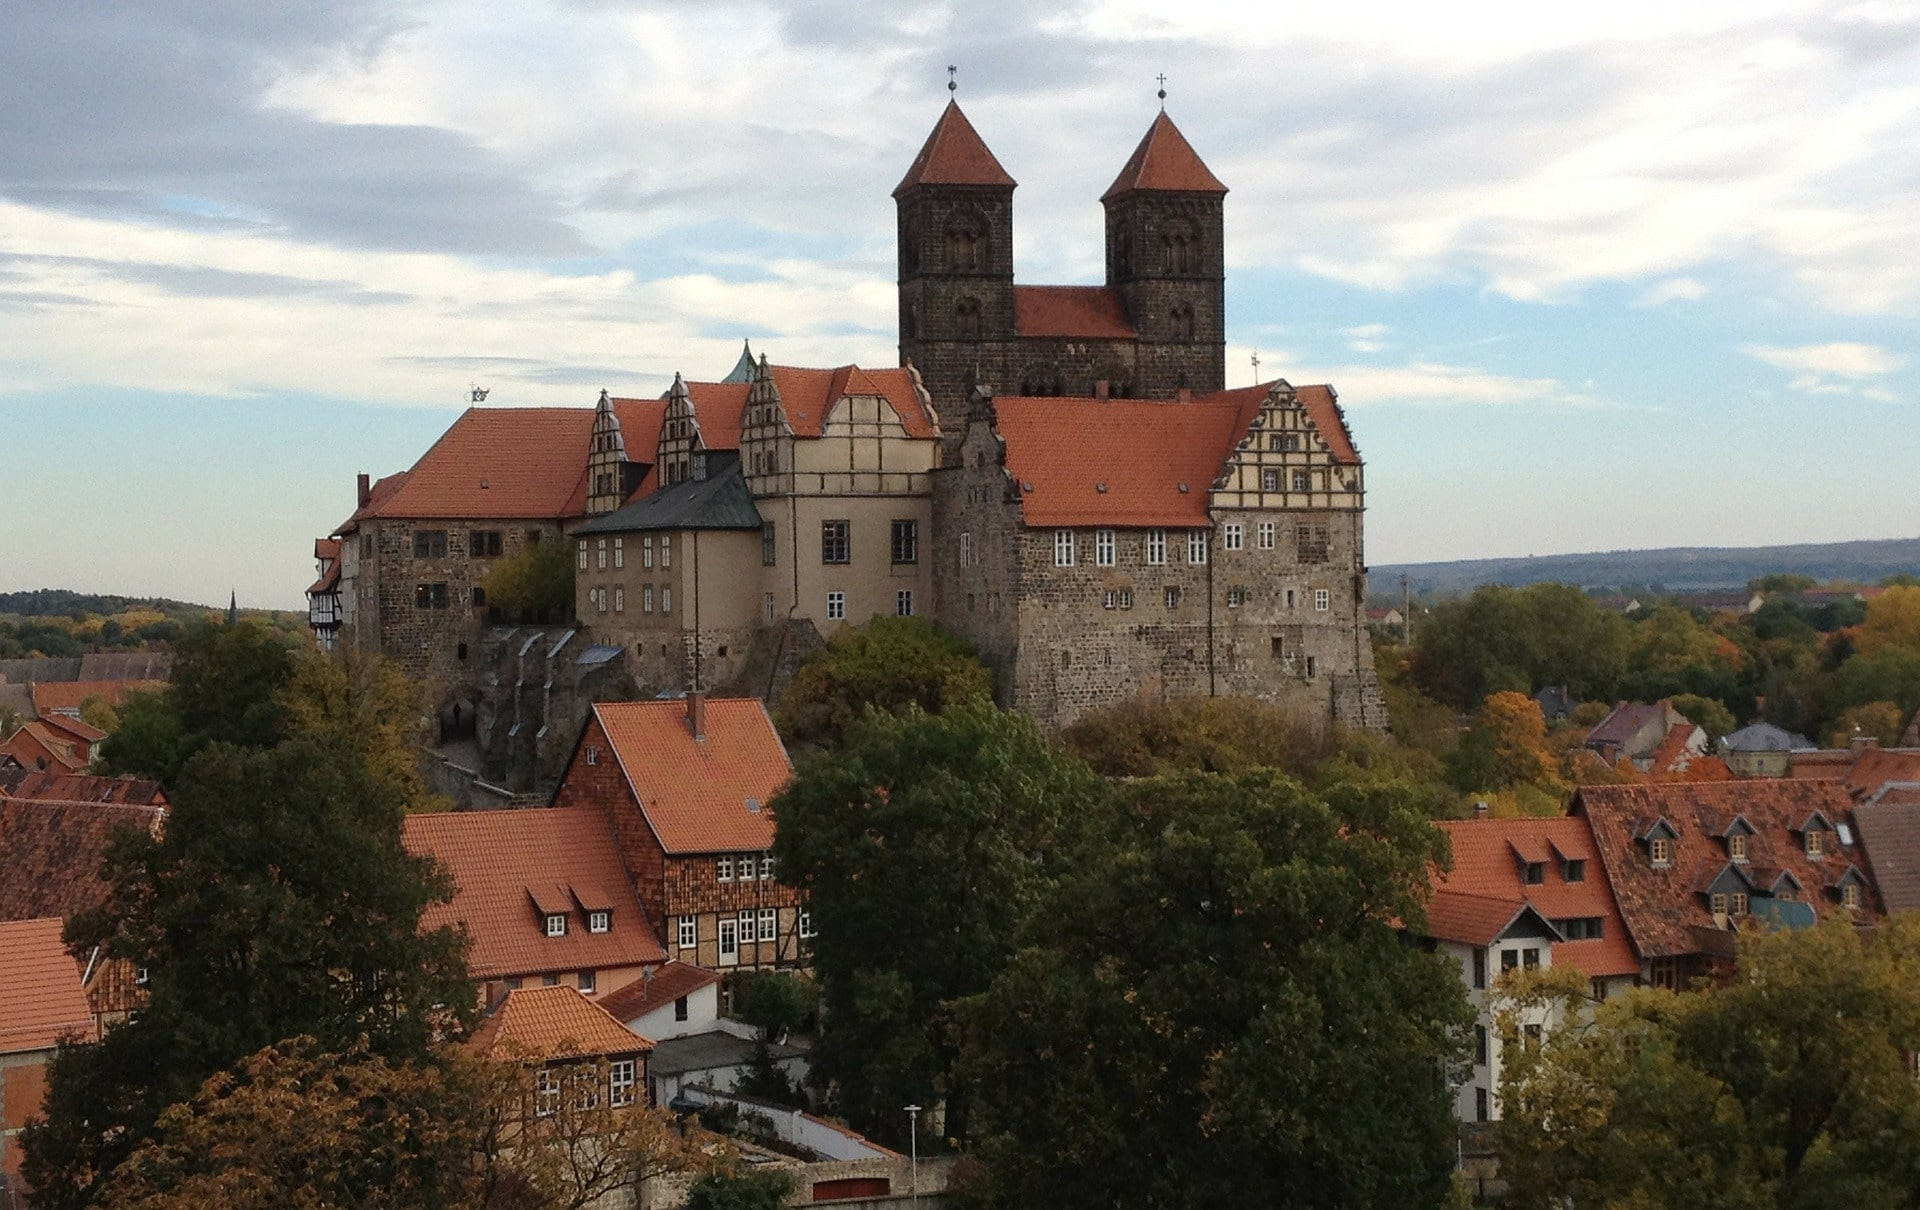 Arinax is a sponsor of the HEC 21 Meeting, in Quedlinburg